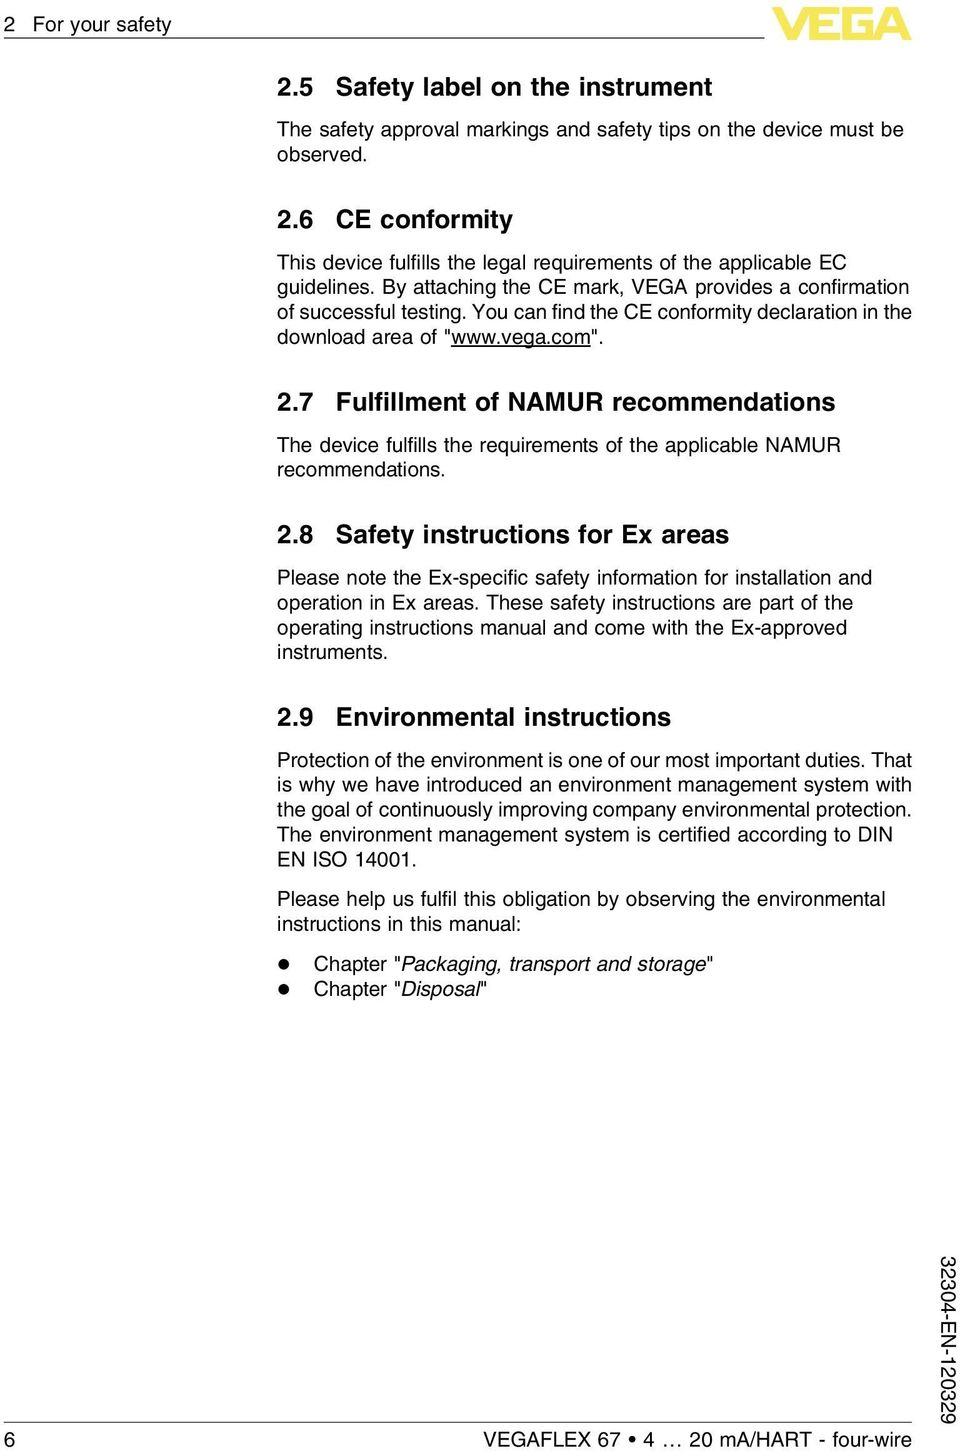 7 Fulfillment of NAMUR recommendations The device fulfills the requirements of the applicable NAMUR recommendations. 2.